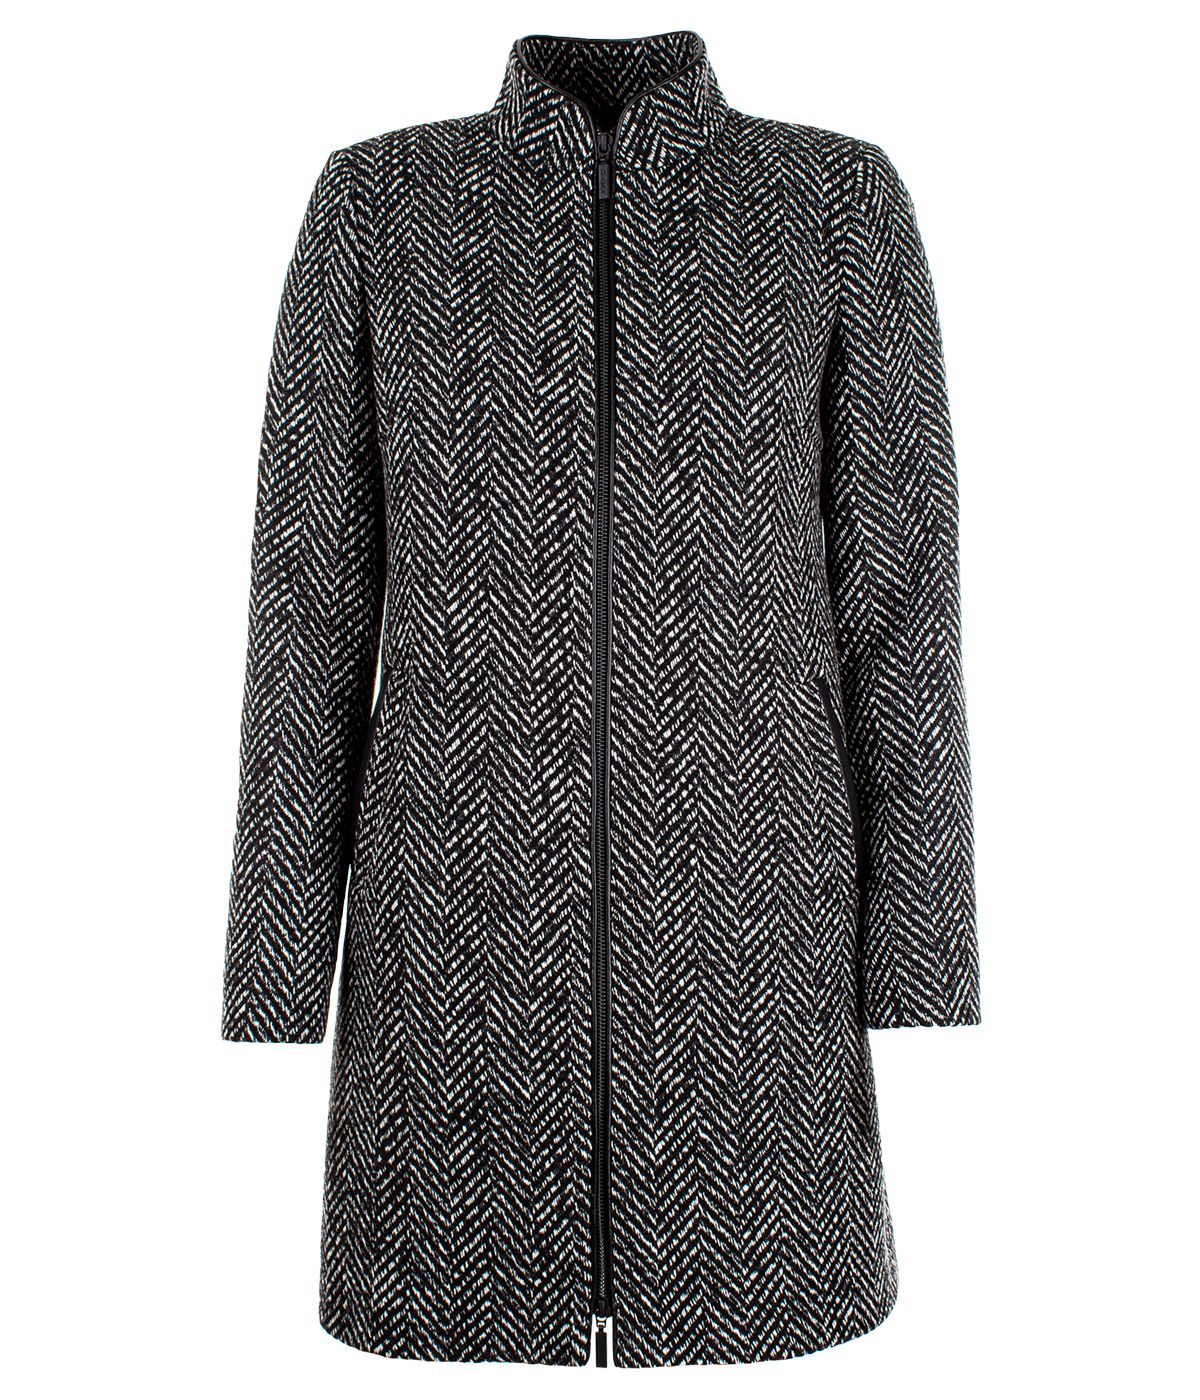 Wool coat herringbone, zip fastening